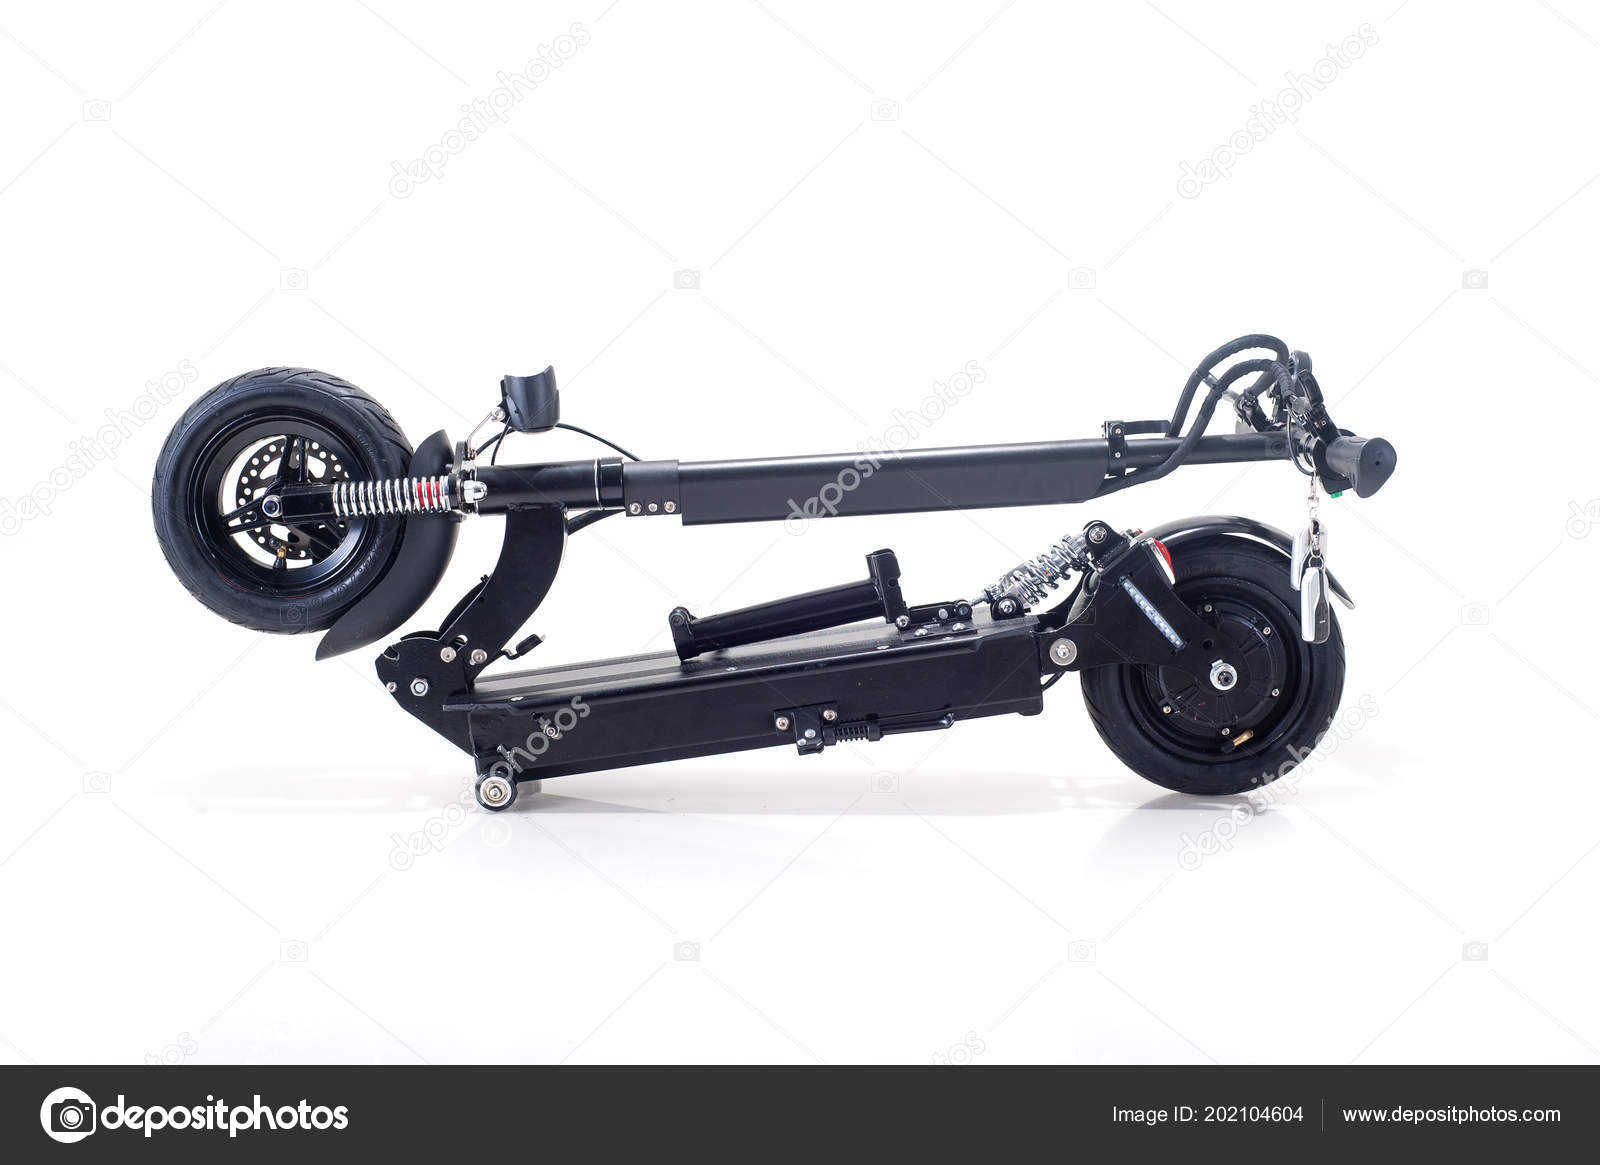 Electric Scooter Hoverboard Vehicle Stock Photo C Sergiomishin 202104604